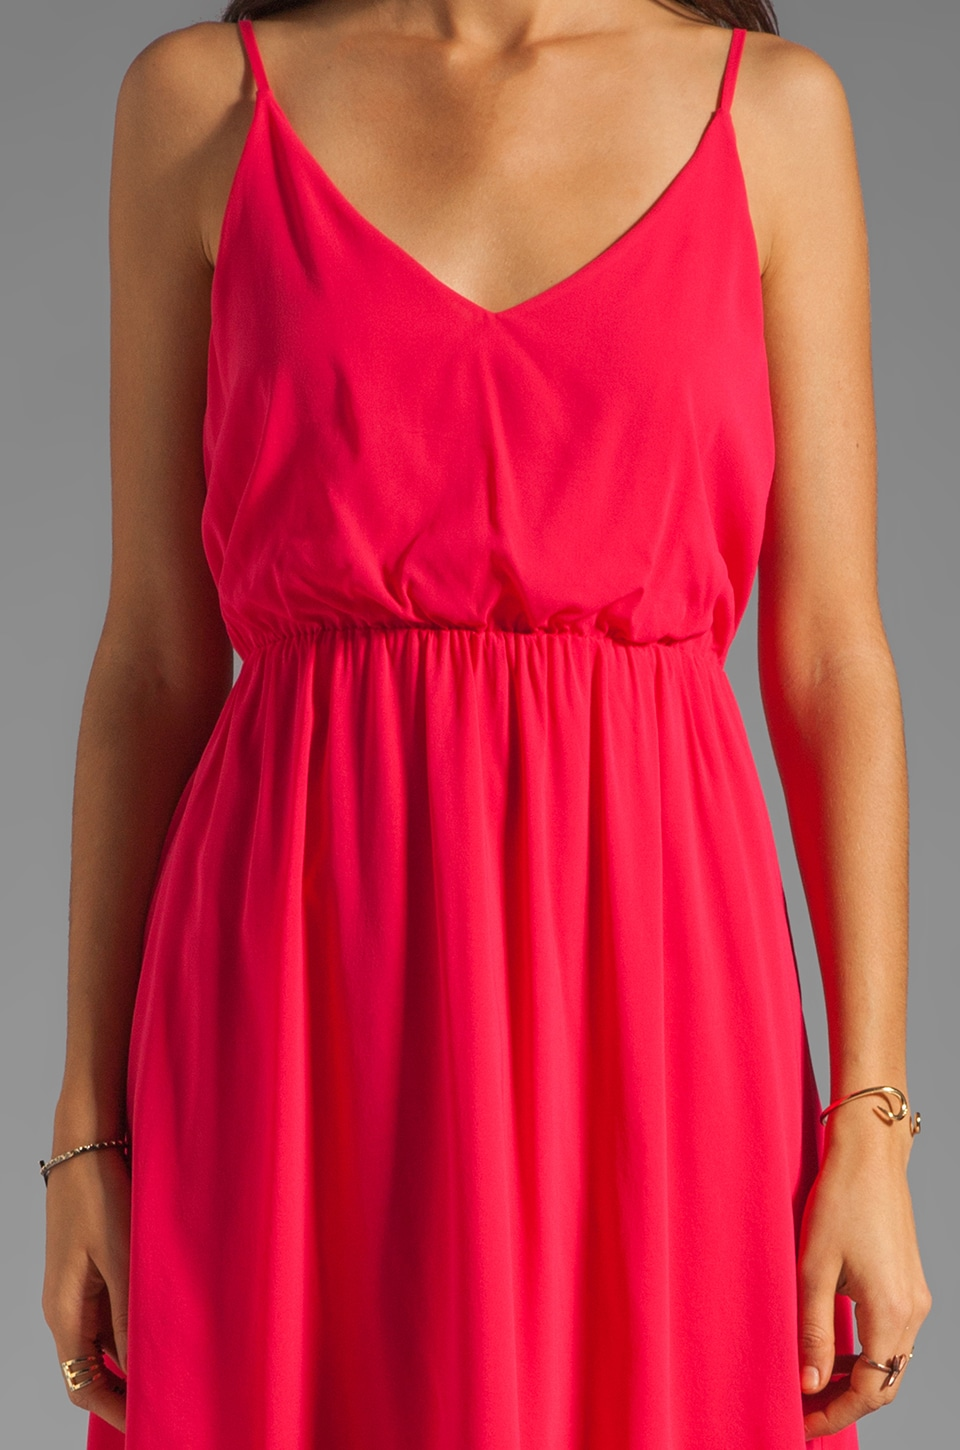 Alice + Olivia Arlen Geometric Back Short Dress in Bright Raspberry